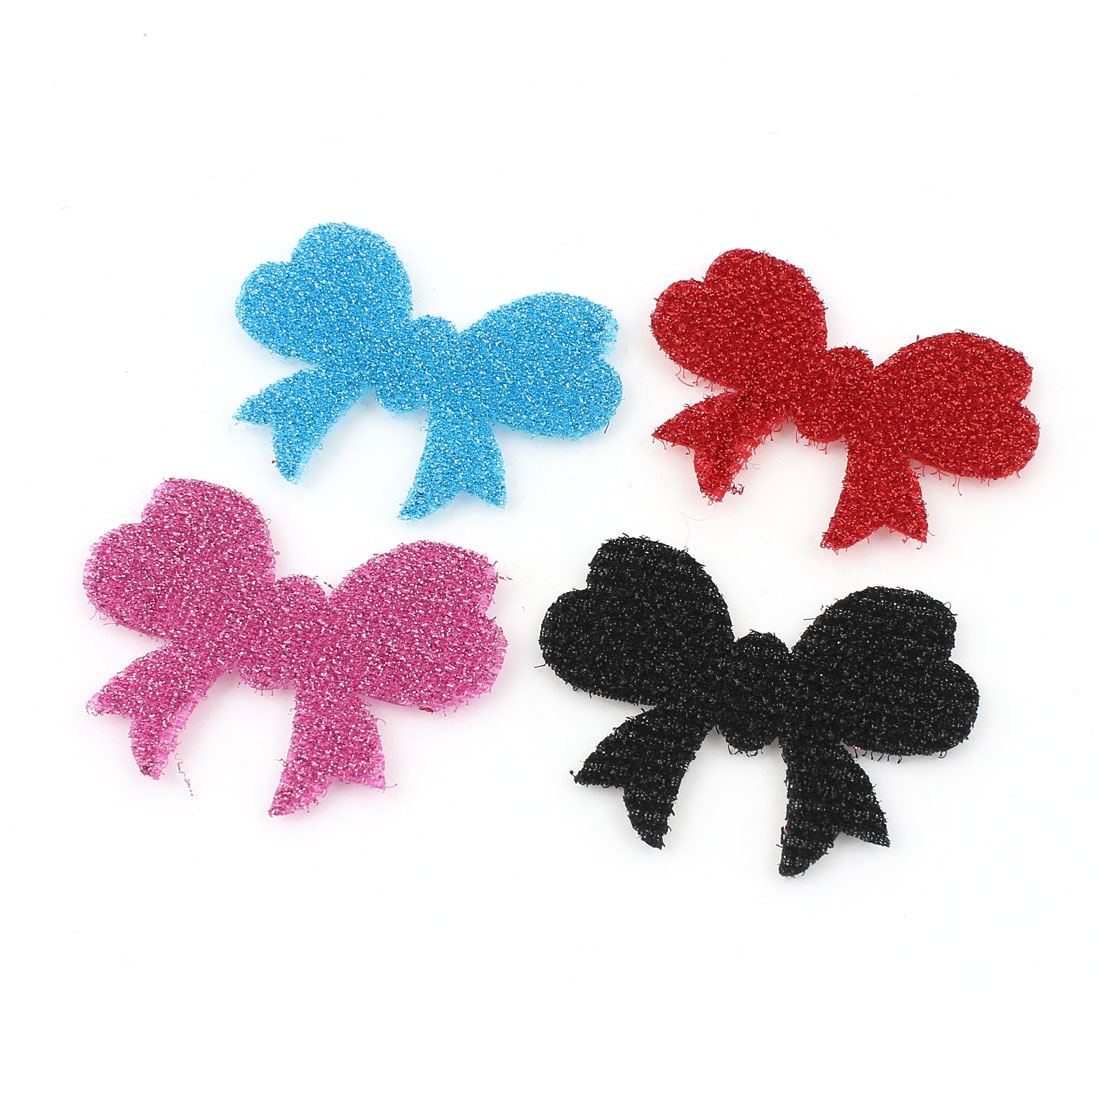 Bowtie Design Magic Hair Fringe Holder Stabilizer Makeup Grip Pad Sticker 4PCS